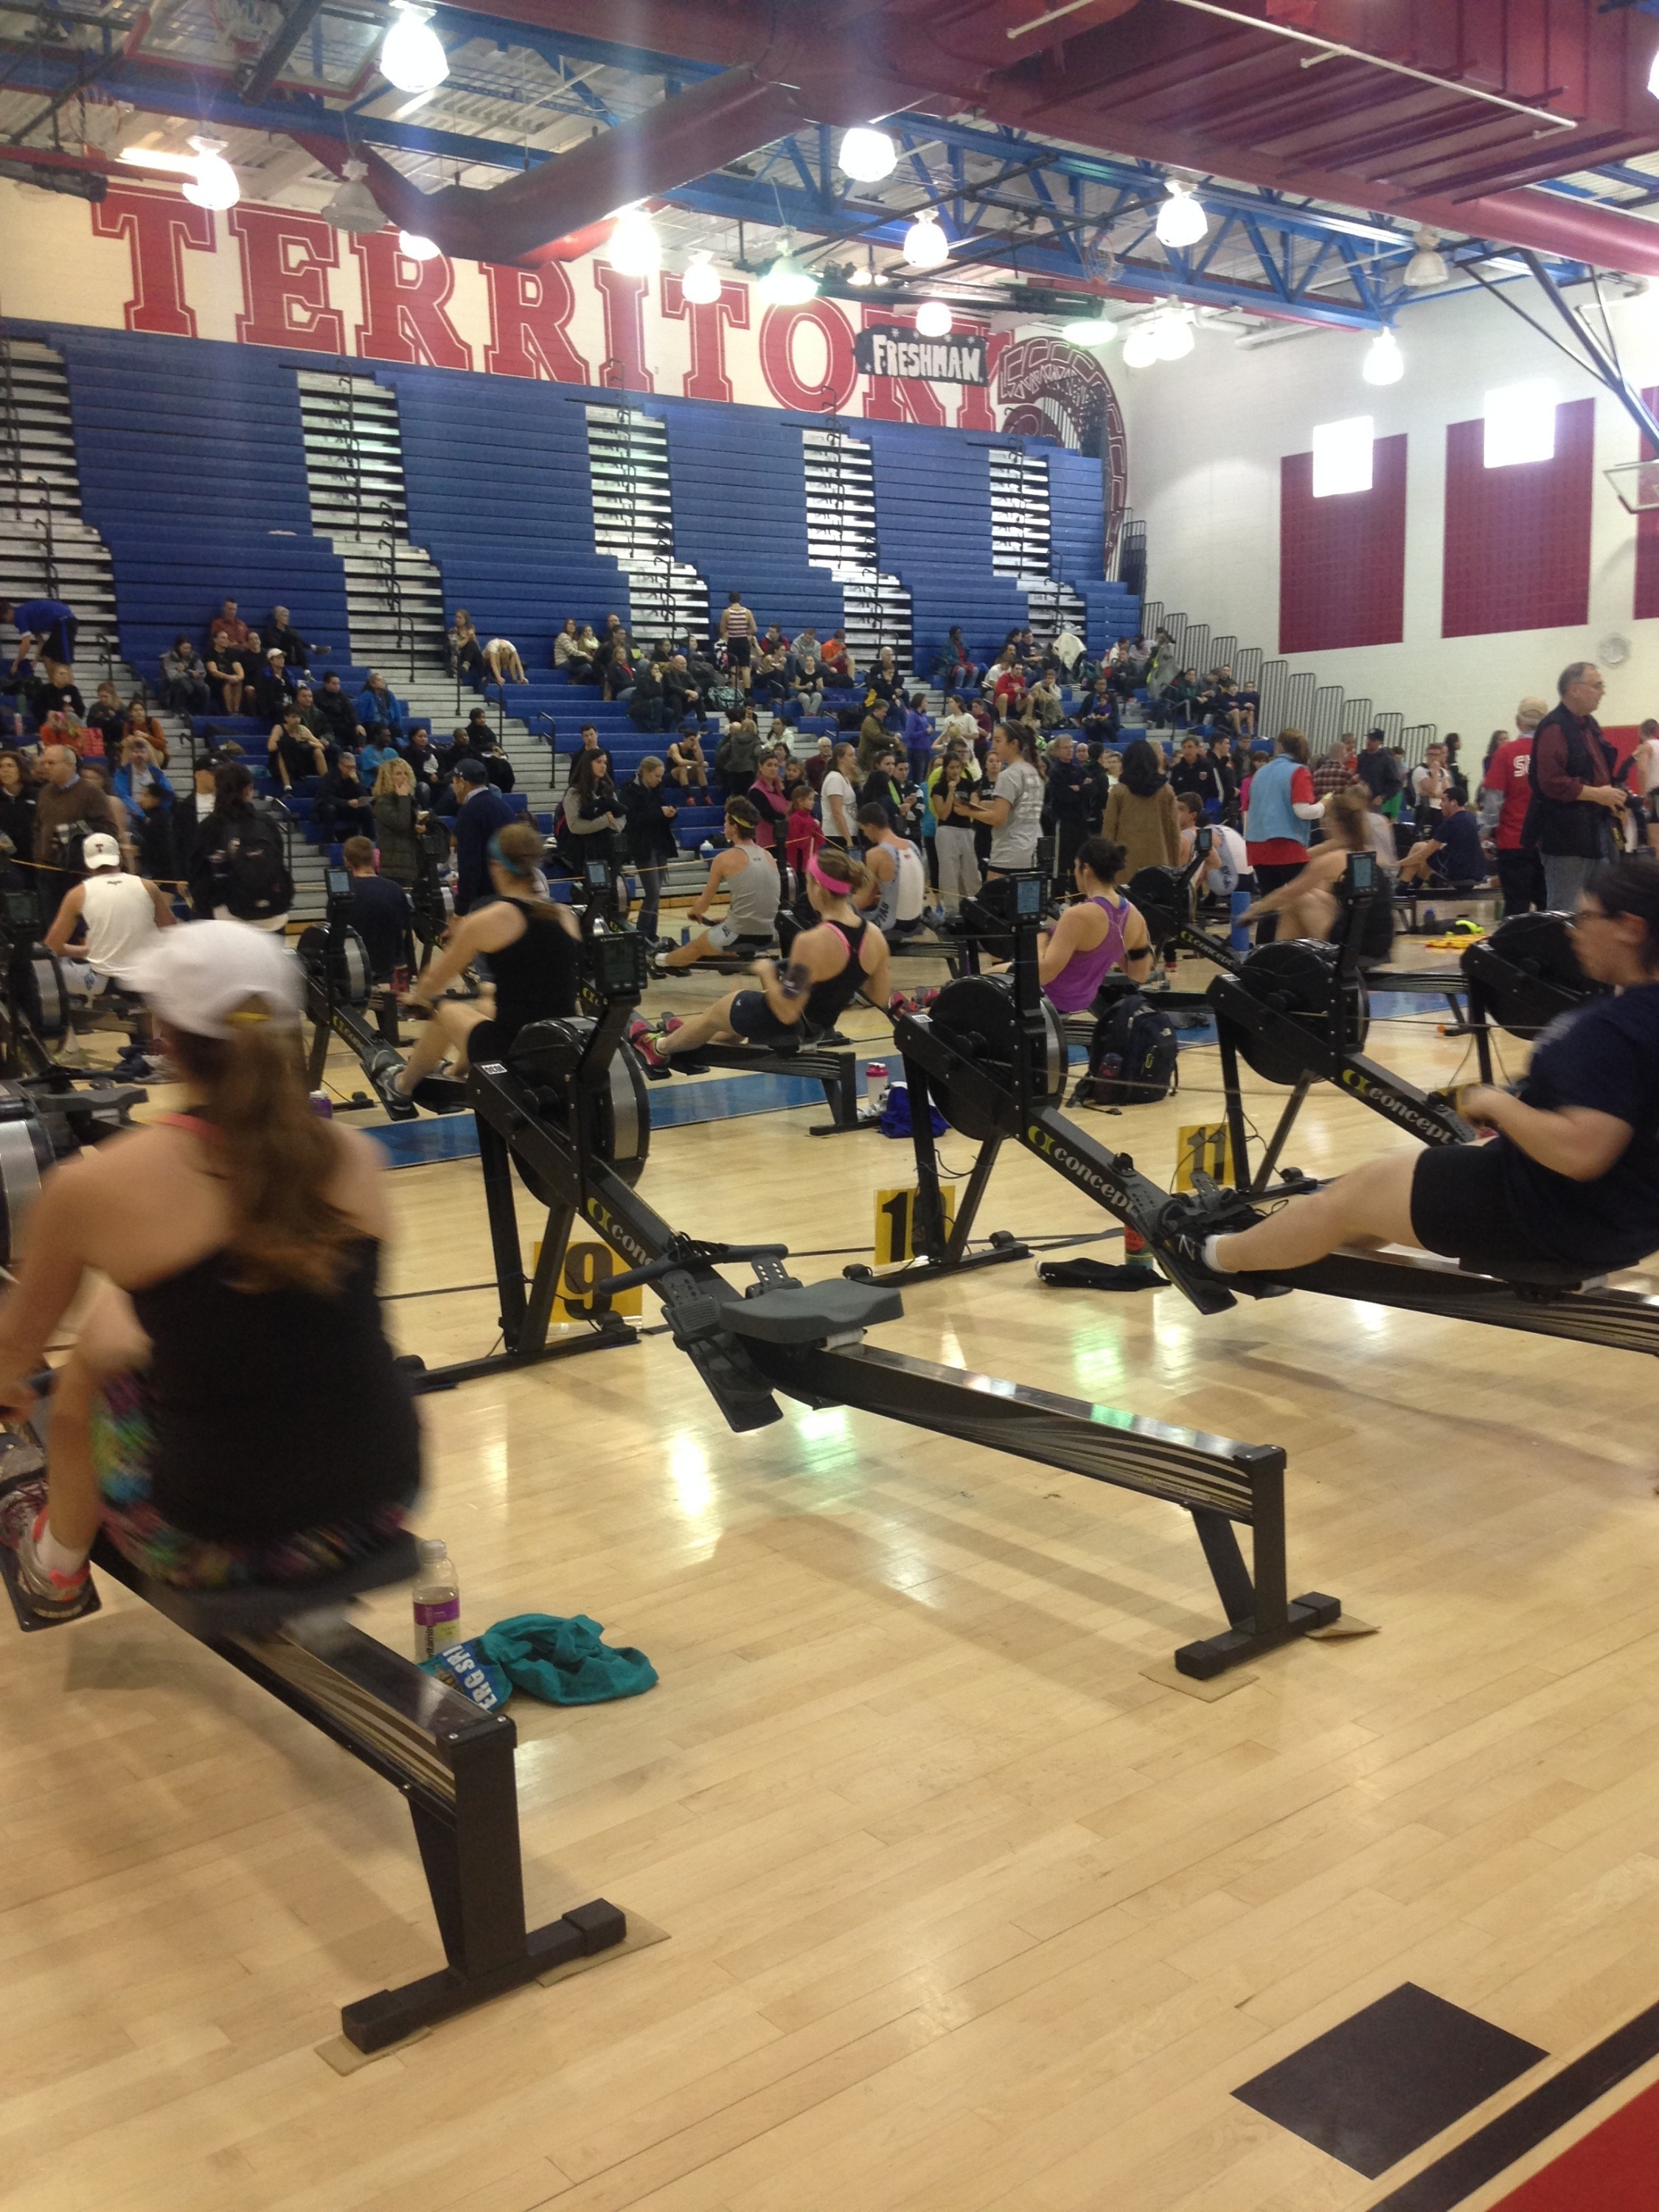 The Erg Sprints is the largest indoor rowing event for juniors in the United States.